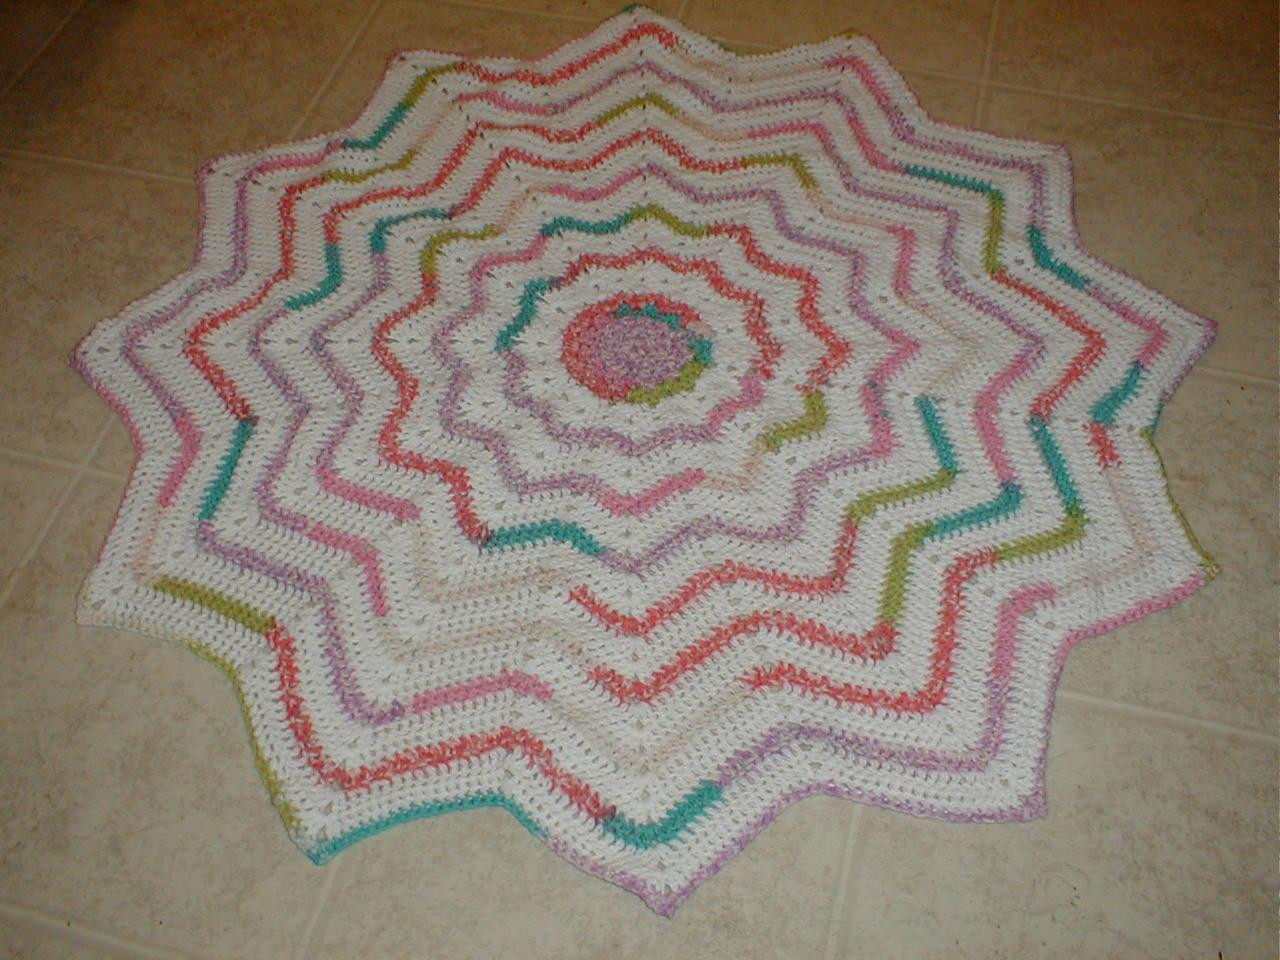 Fresh Free Pattern Crochet Round Baby Blanket Dancox for Crochet Round Baby Blanket Of Lovely New Hand Crochet Round Lacy Pink & White Baby Afghan Crochet Round Baby Blanket